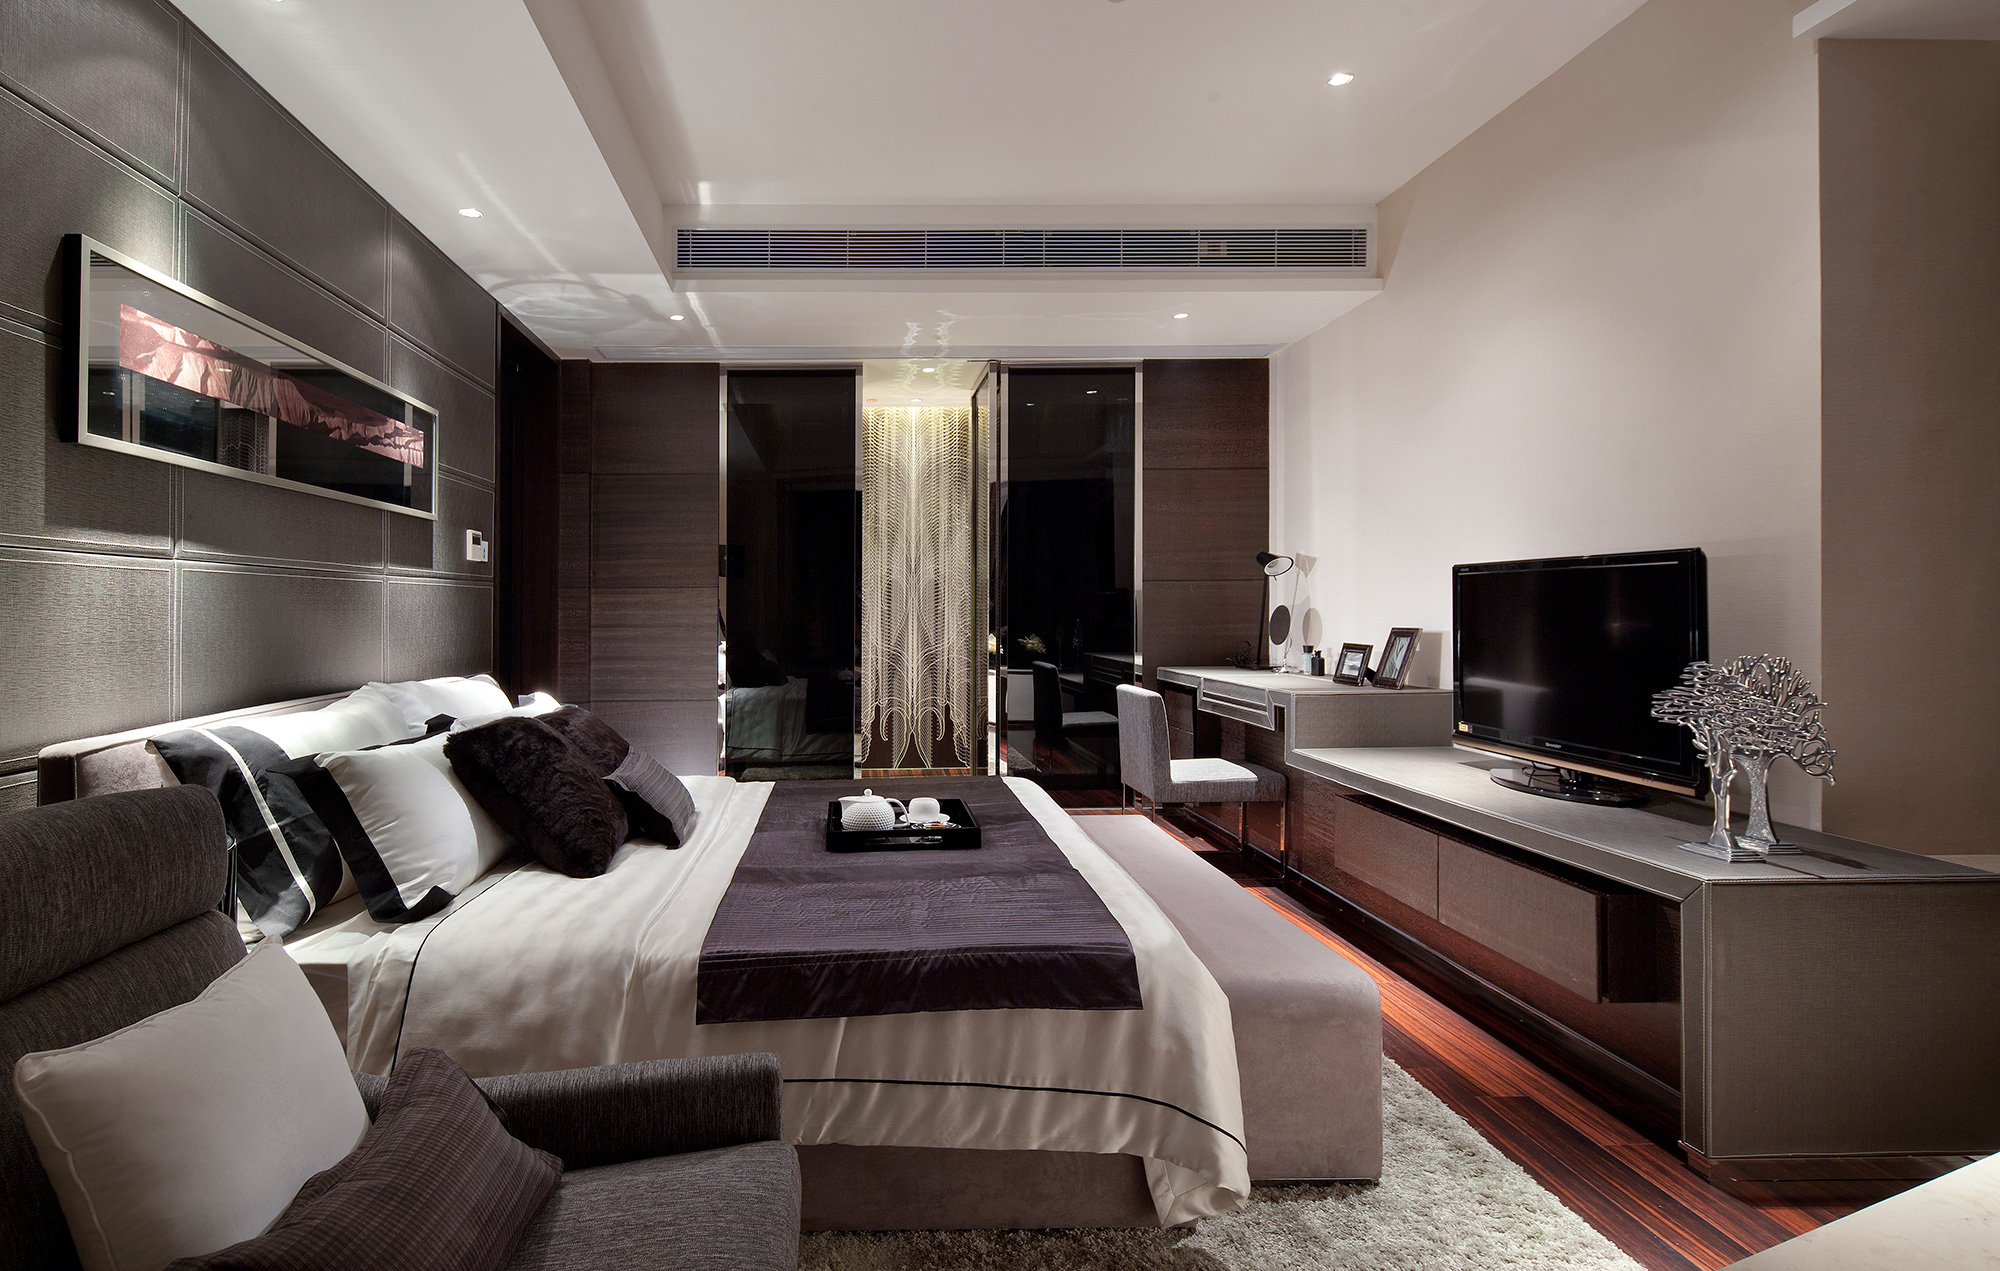 Synergistic modern spaces by steve leung for Bedroom modern design